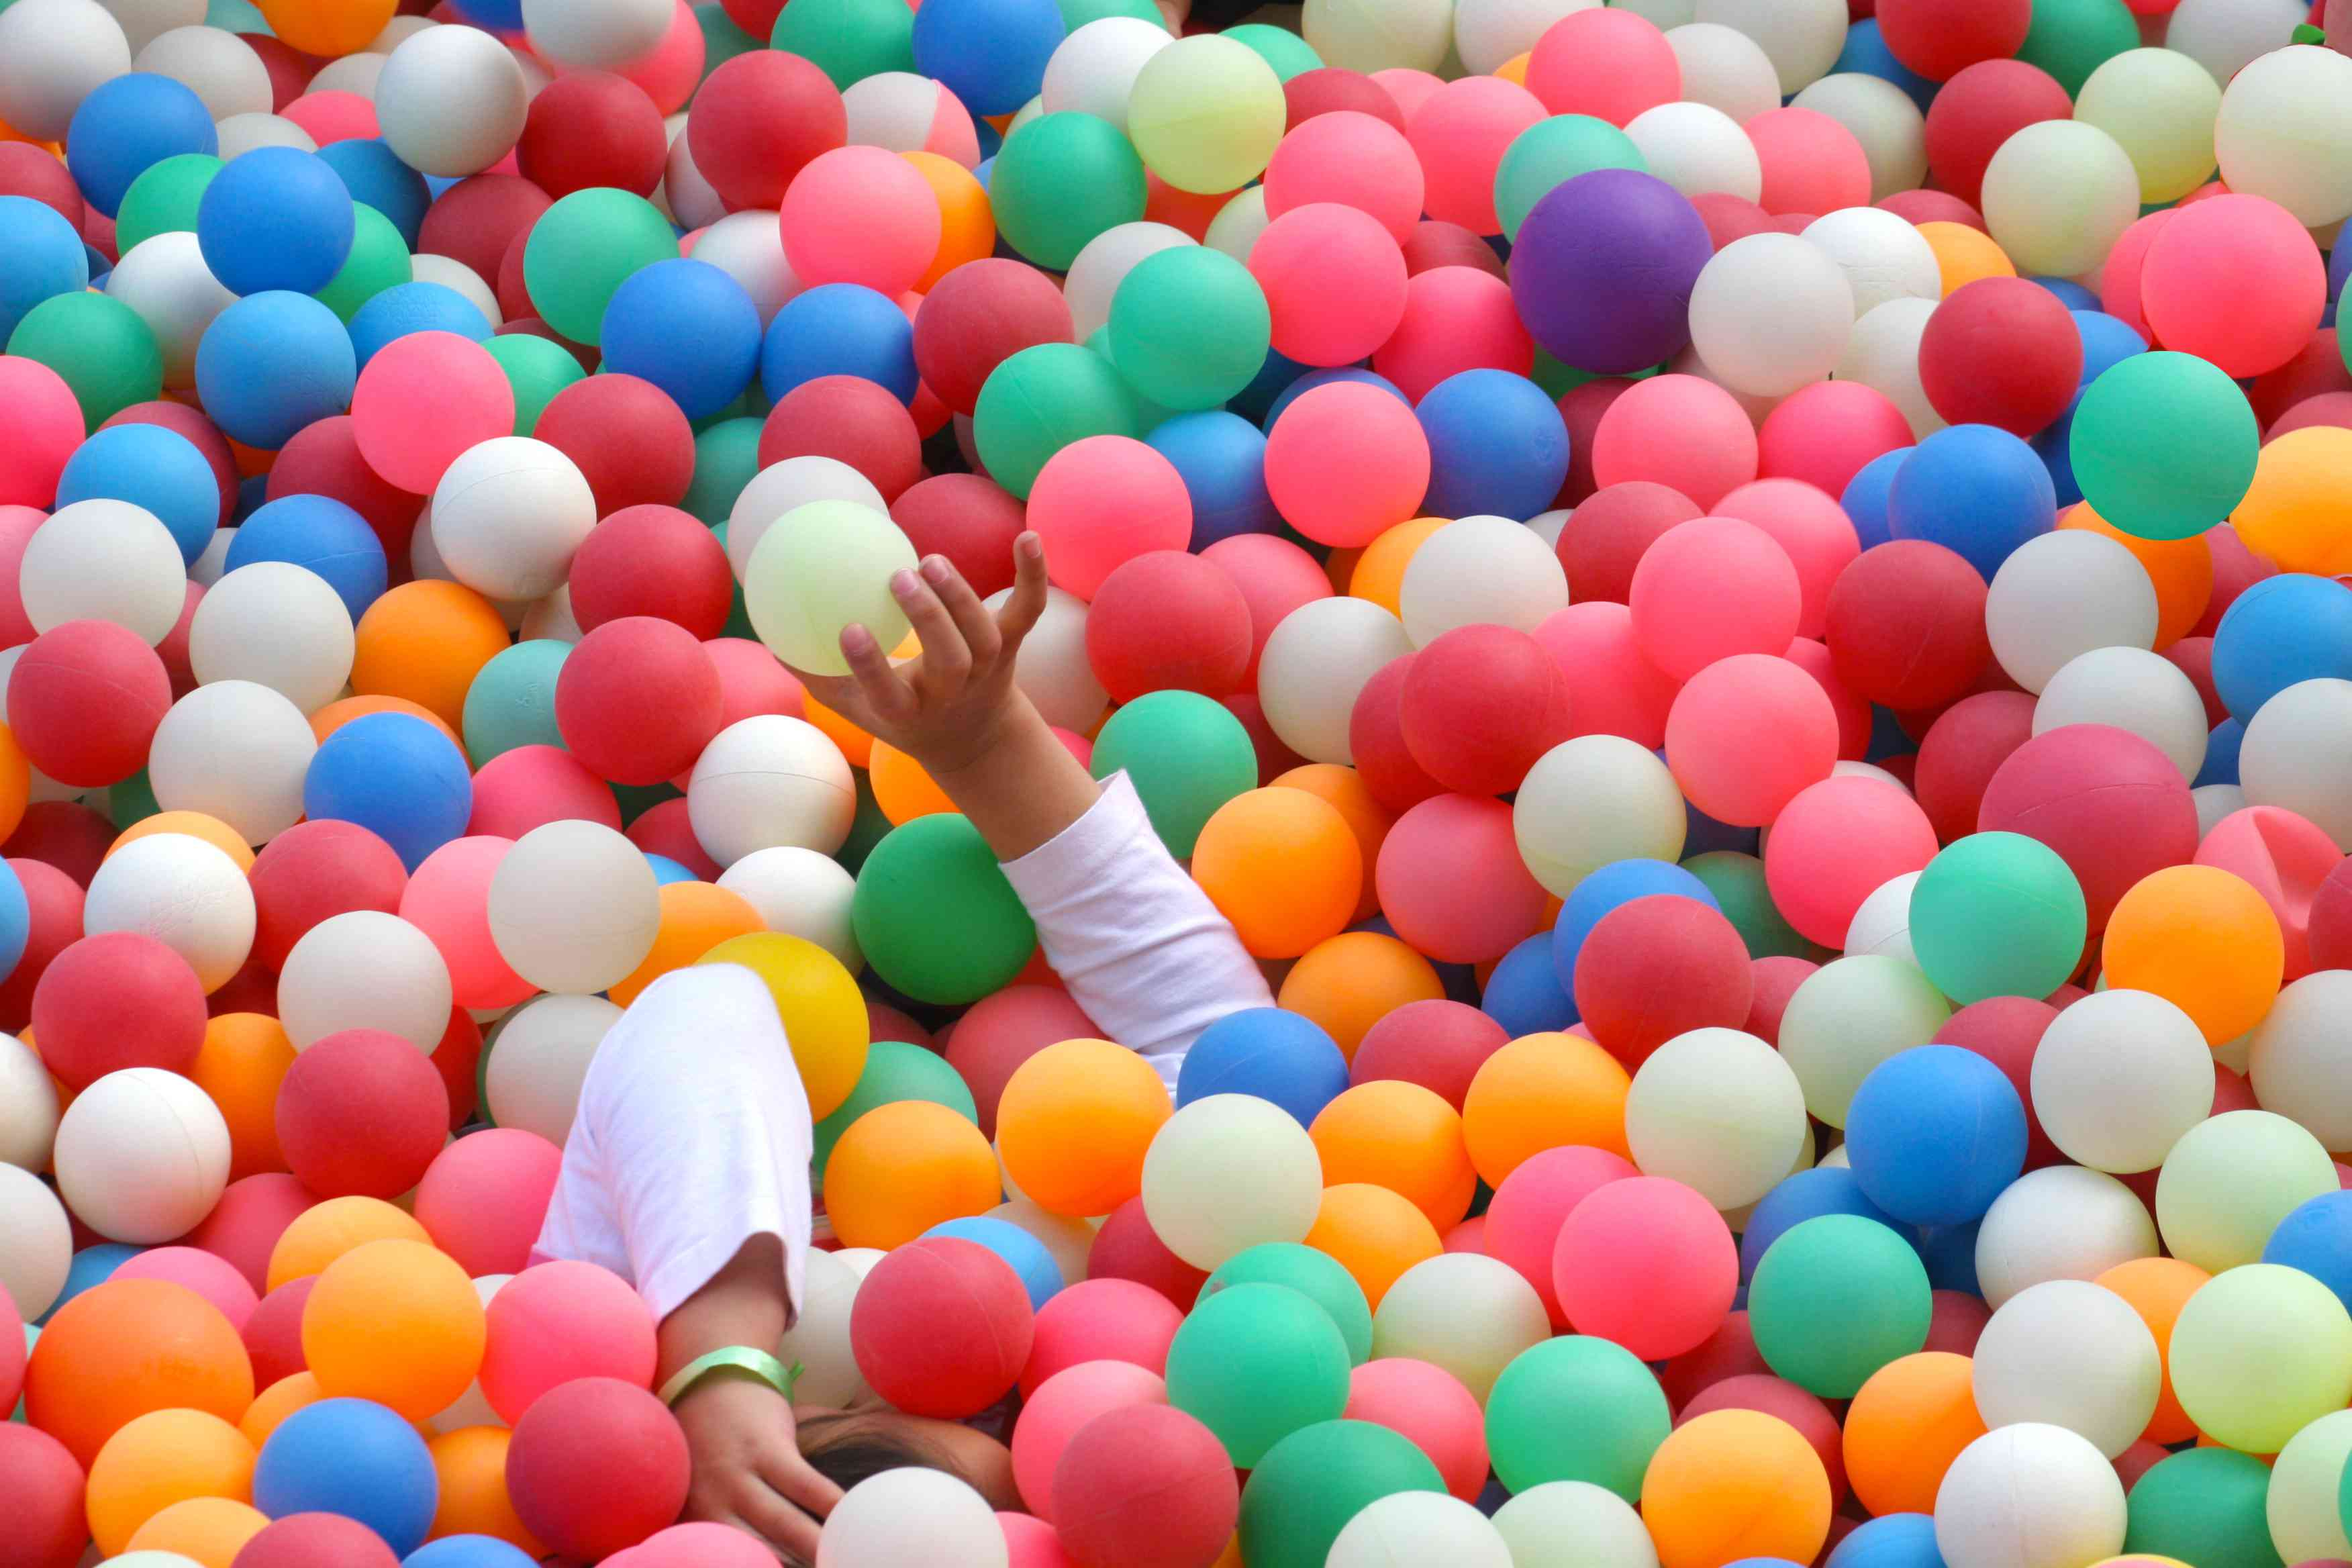 ball pool with colorful balls